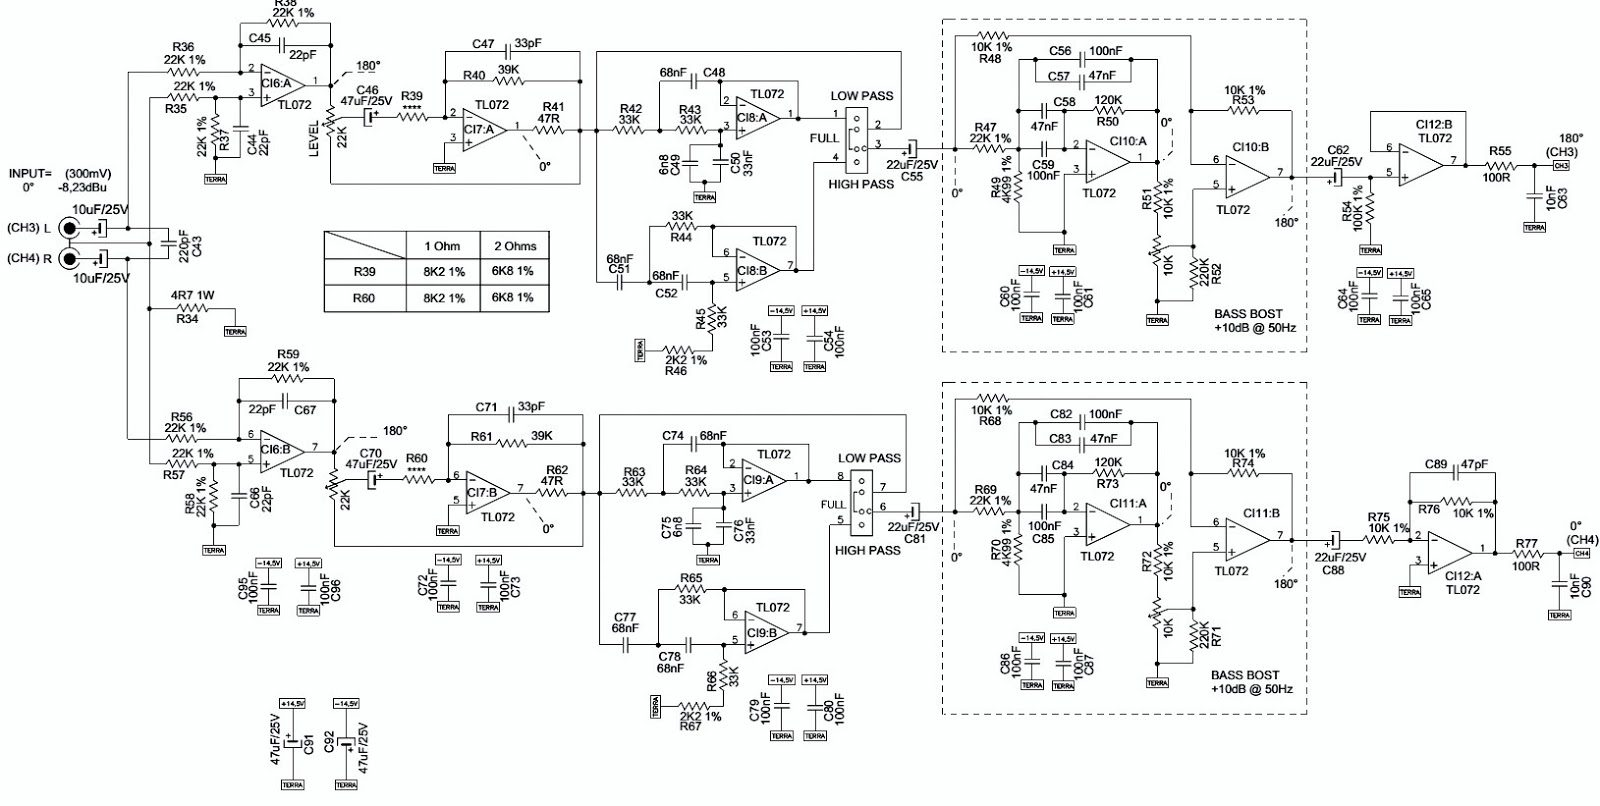 Irs2092 Amplifier Schematic Class D Circuit Lm1036 Tone Controlled Power Electro Help Taramps Ts800 X4r1 1 Ohm 2 Ohms Car 400w Claas Subwoofer